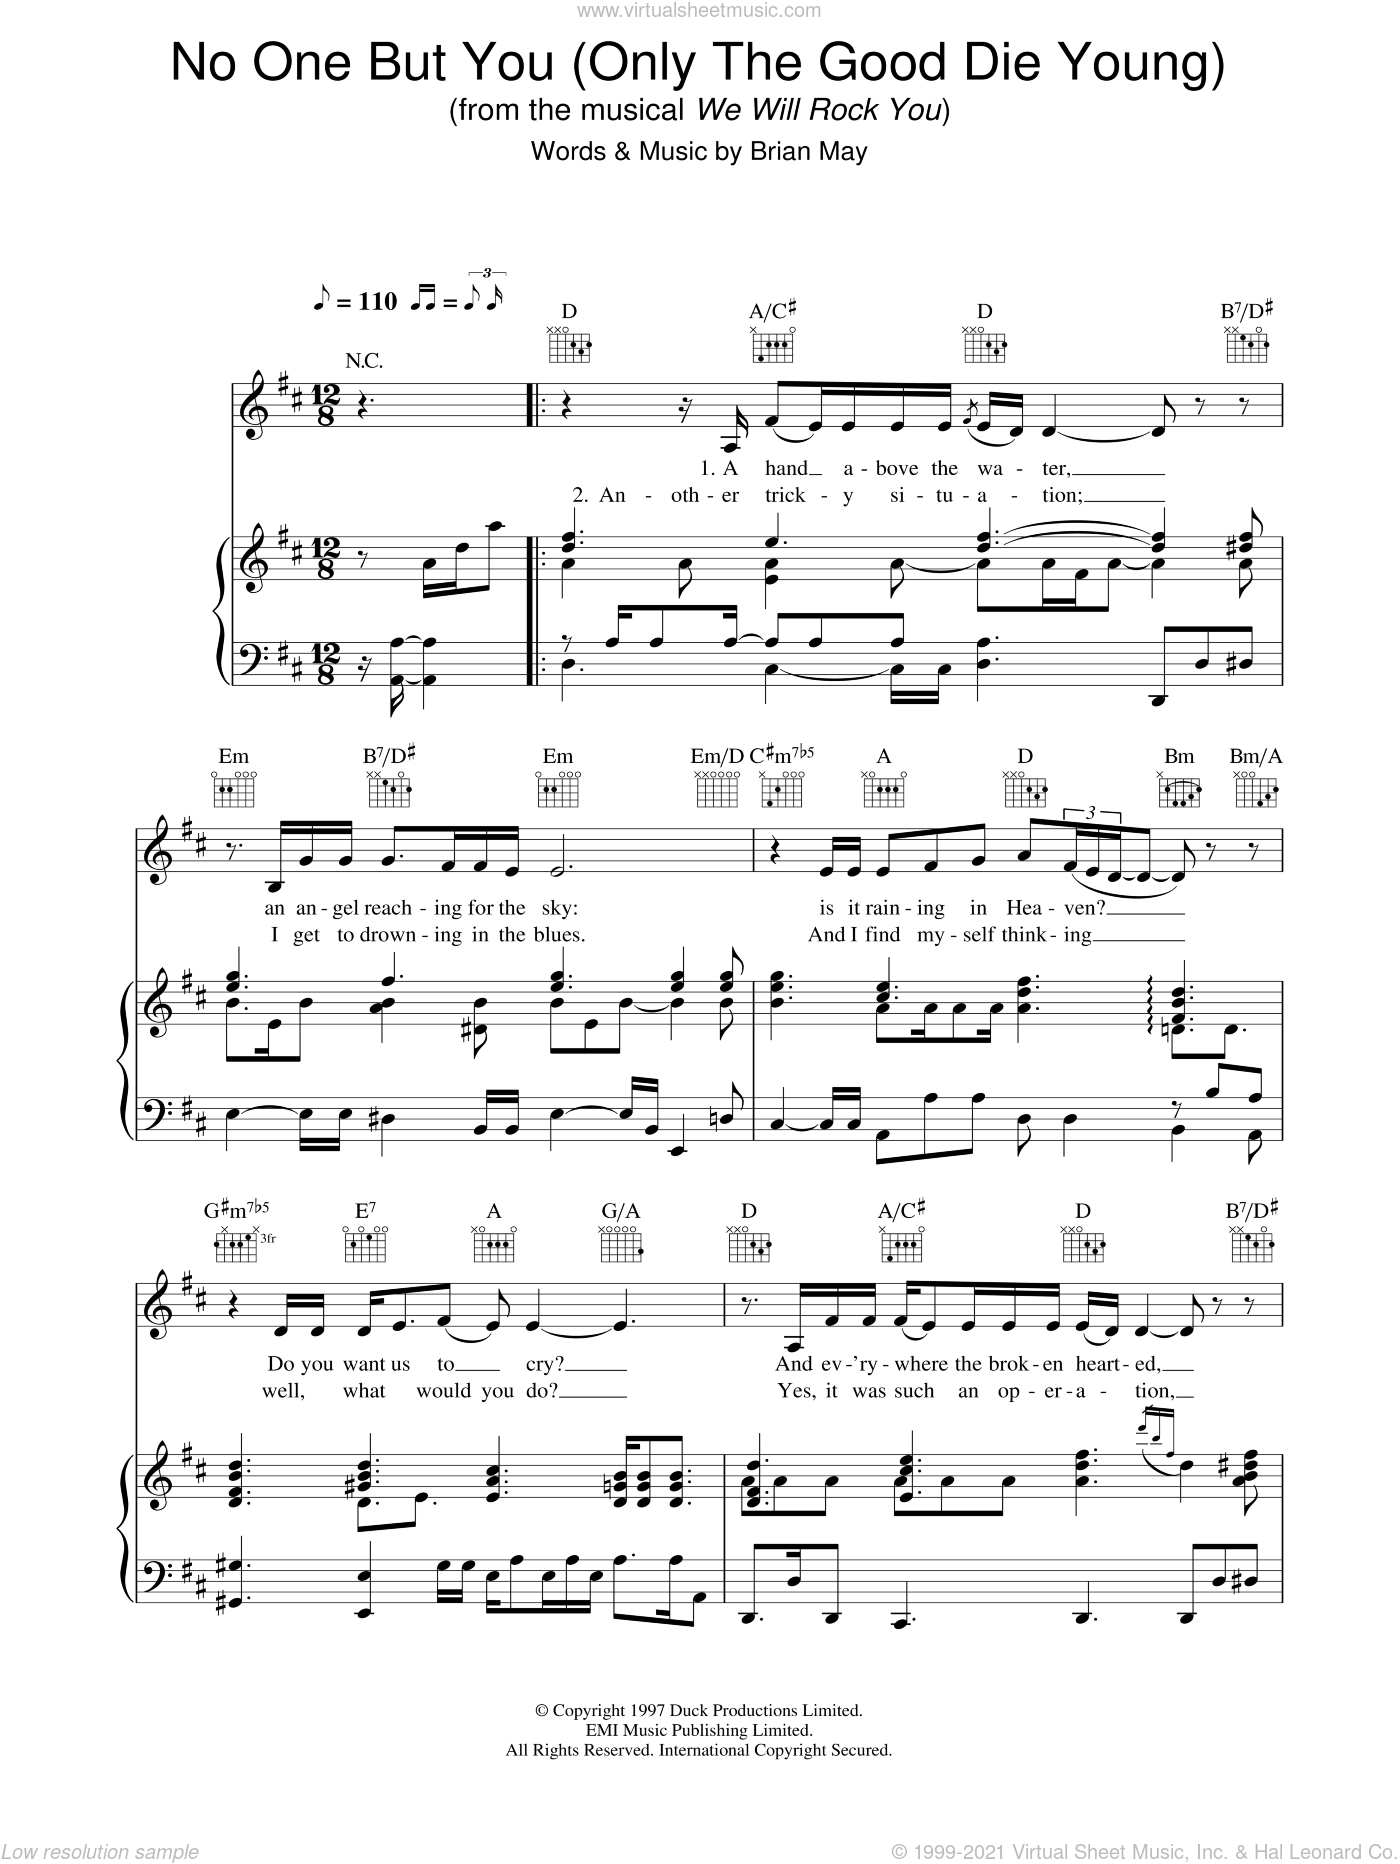 No One But You (Only The Good Die Young) sheet music for voice, piano or guitar by We Will Rock You